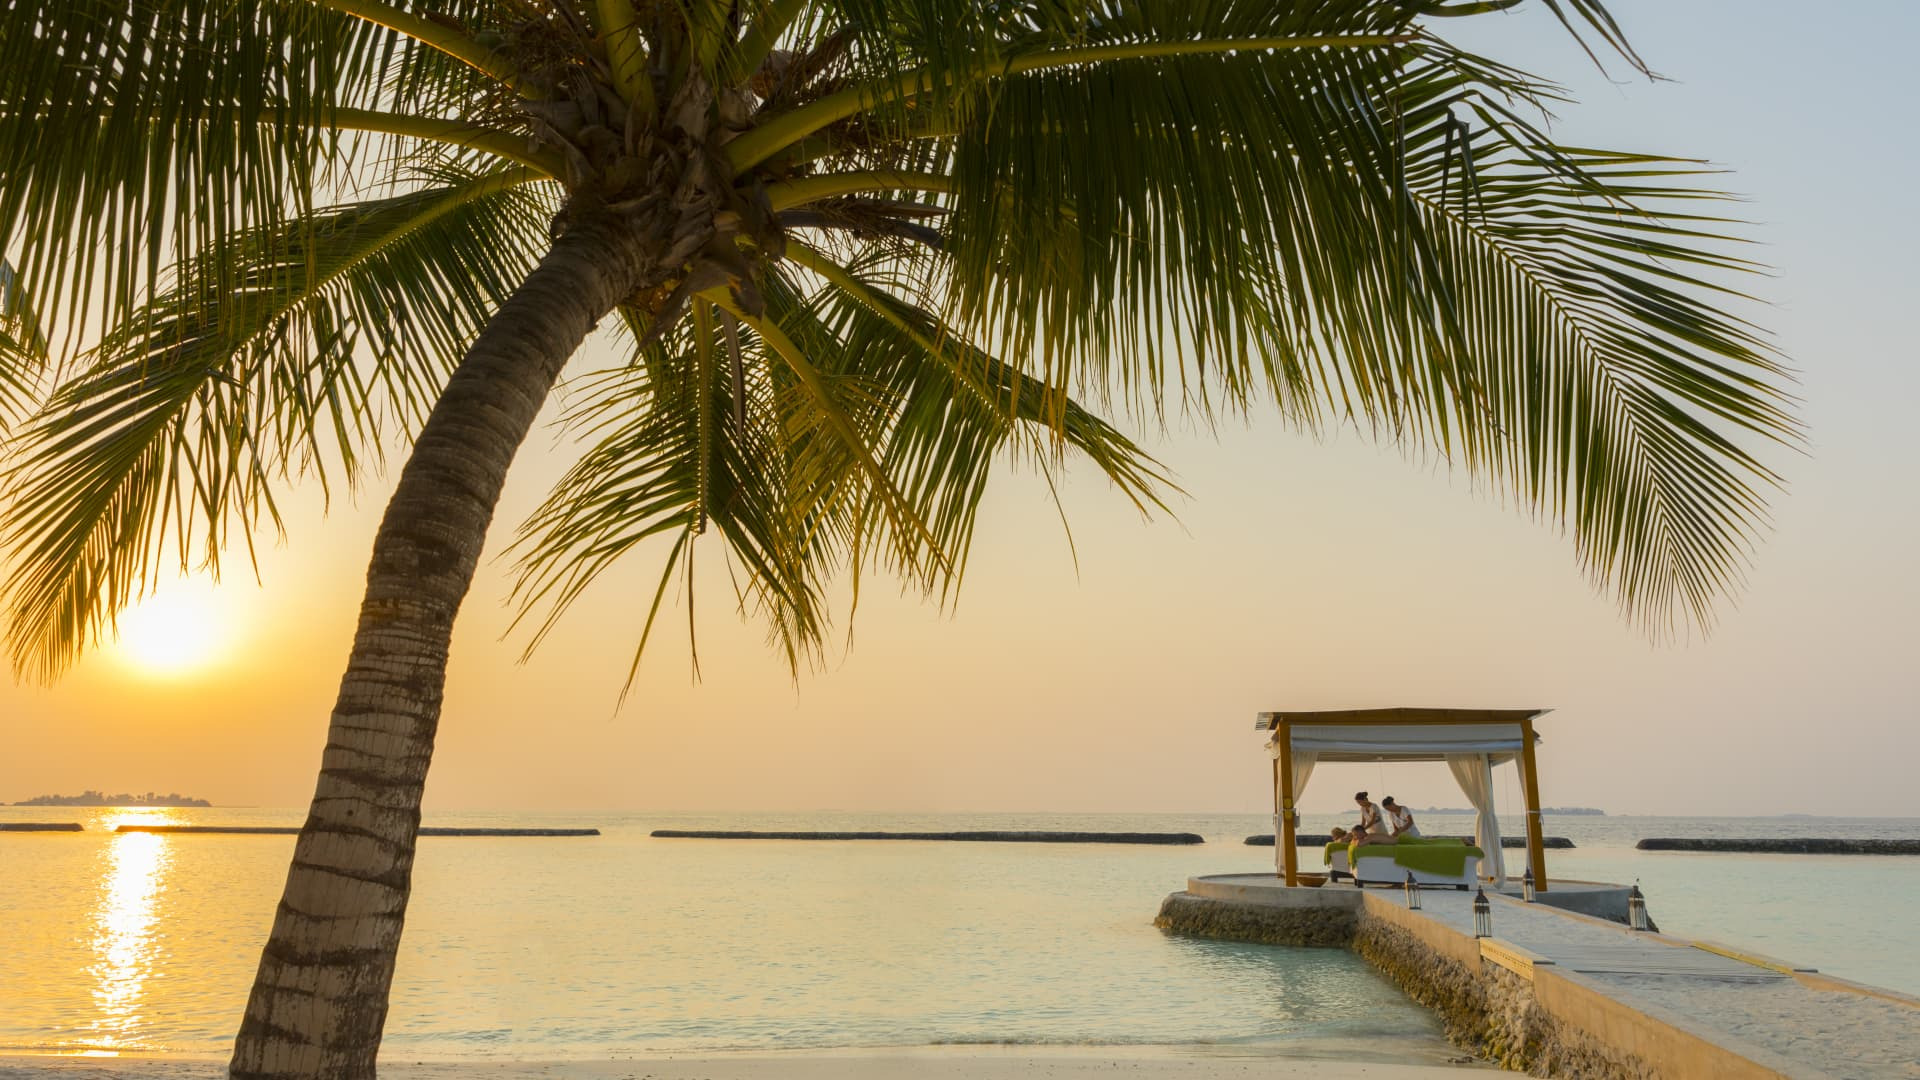 Kurumba in the Maldives is offering a day of socially-distanced activities via its app.